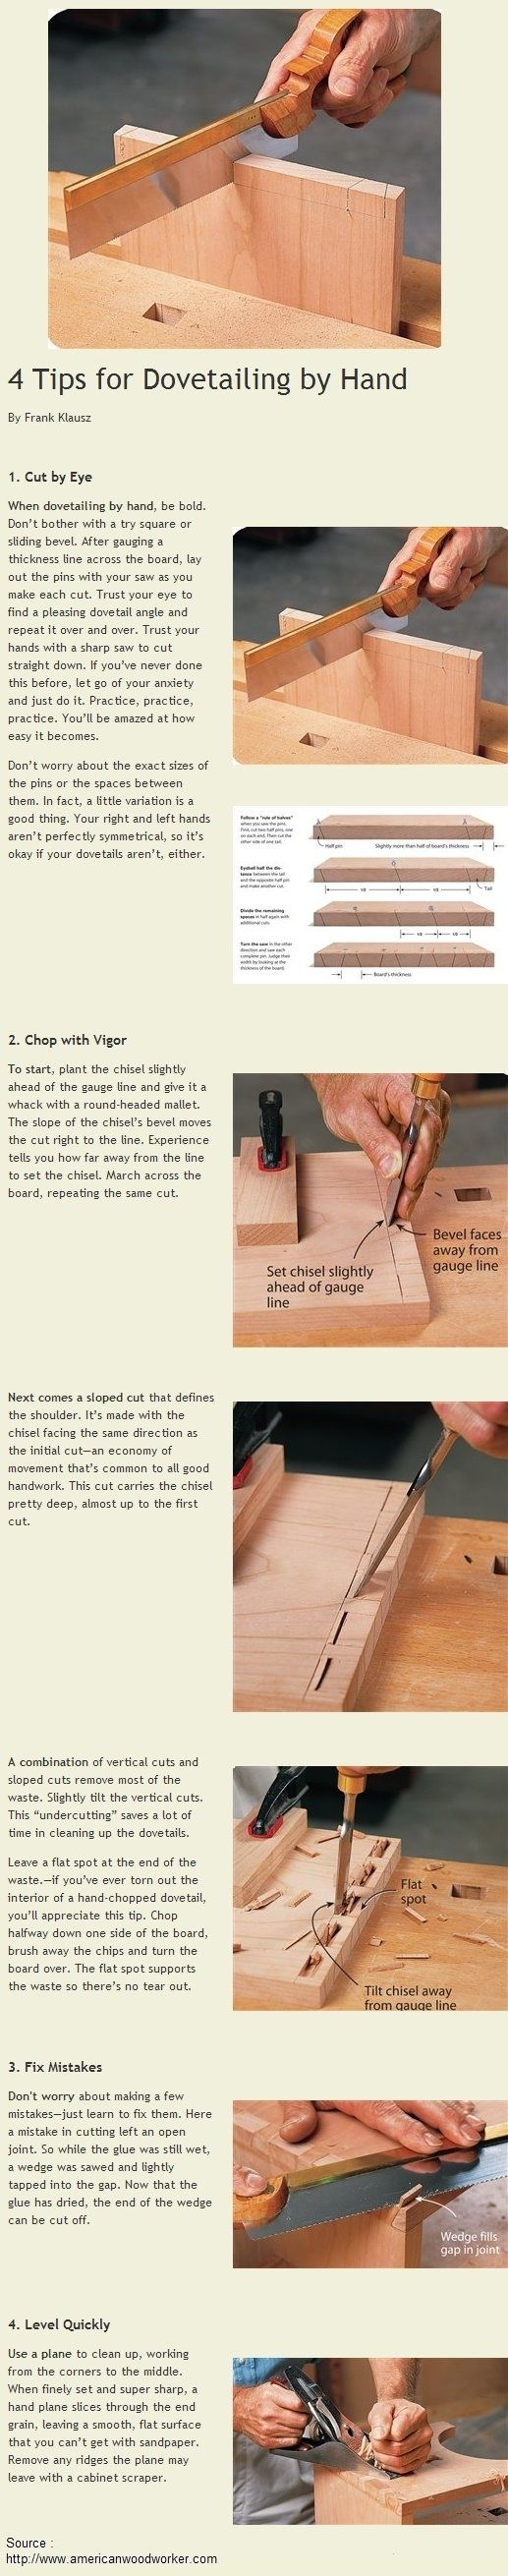 4 Tips for Dovetailing by Hand